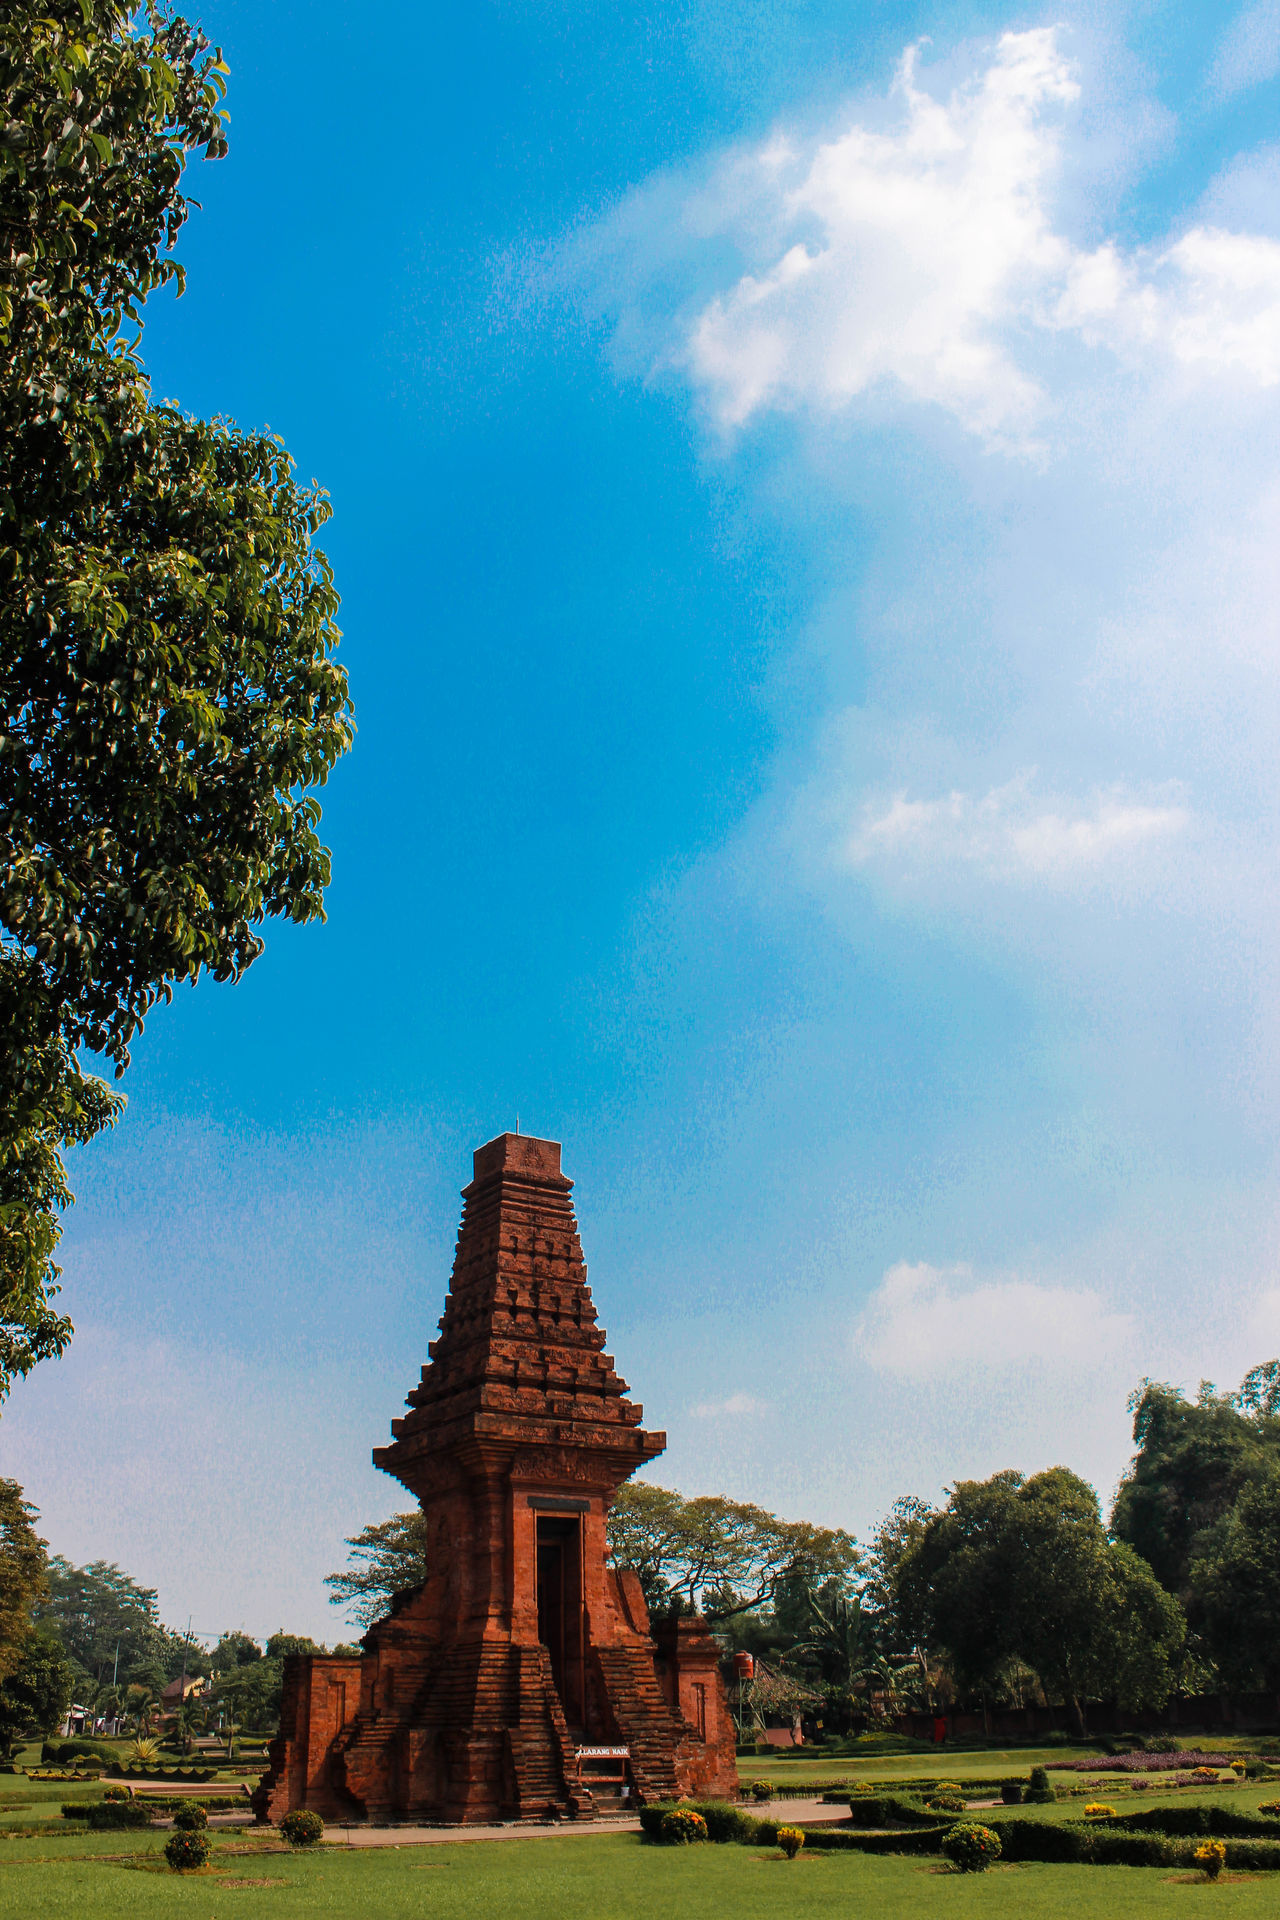 Temple in Mojokerto Indonesia Architecture History Live For The Story Low Angle View Nature No People Old Ruin Outdoors Religion Spirituality Travel Destinations